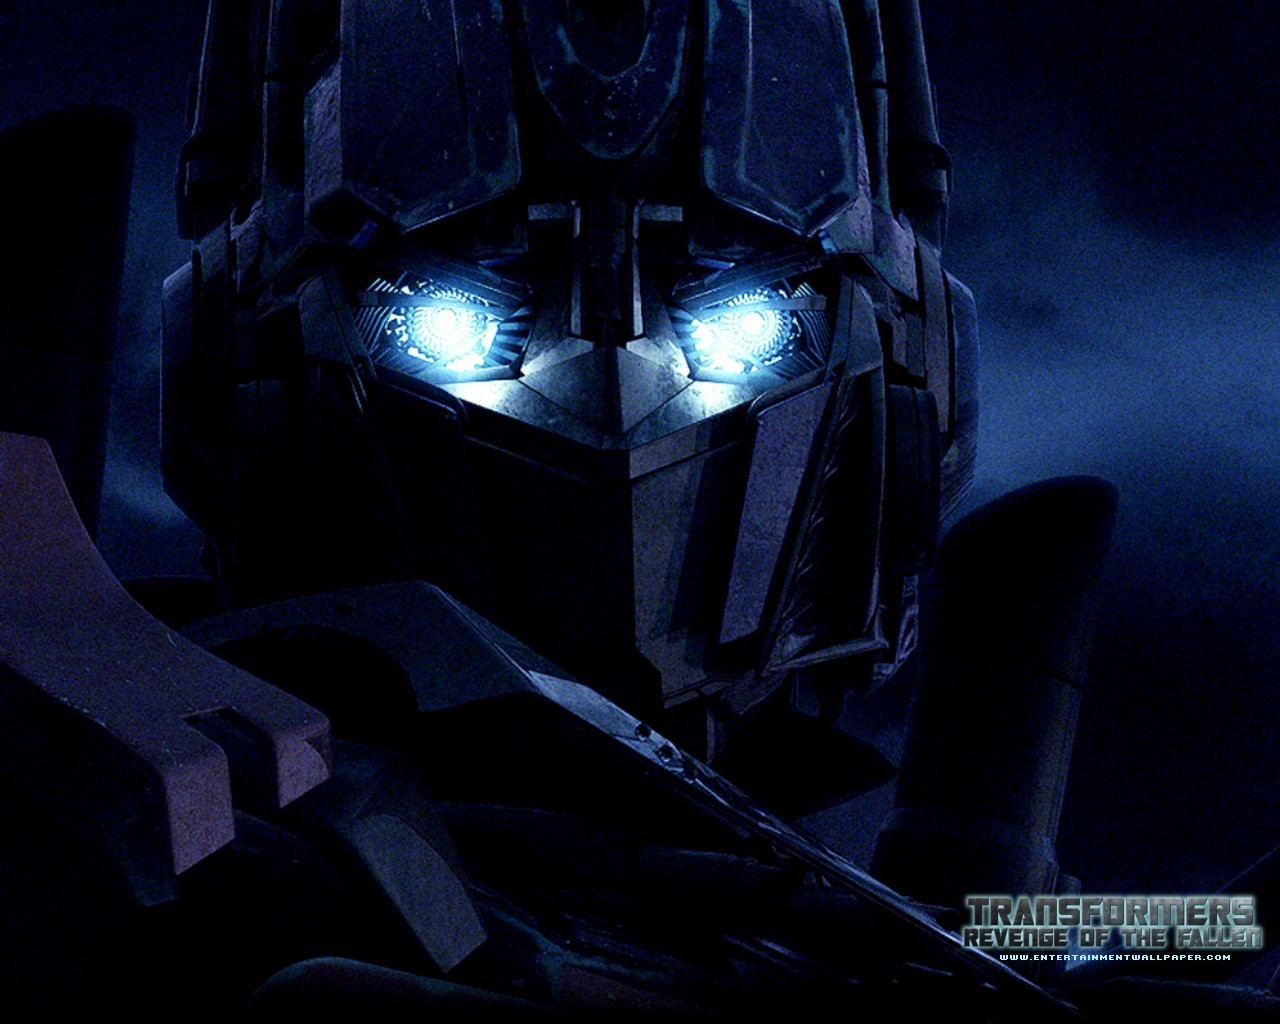 Transformers 2 Wallpapers and Backgrounds 1280x1024